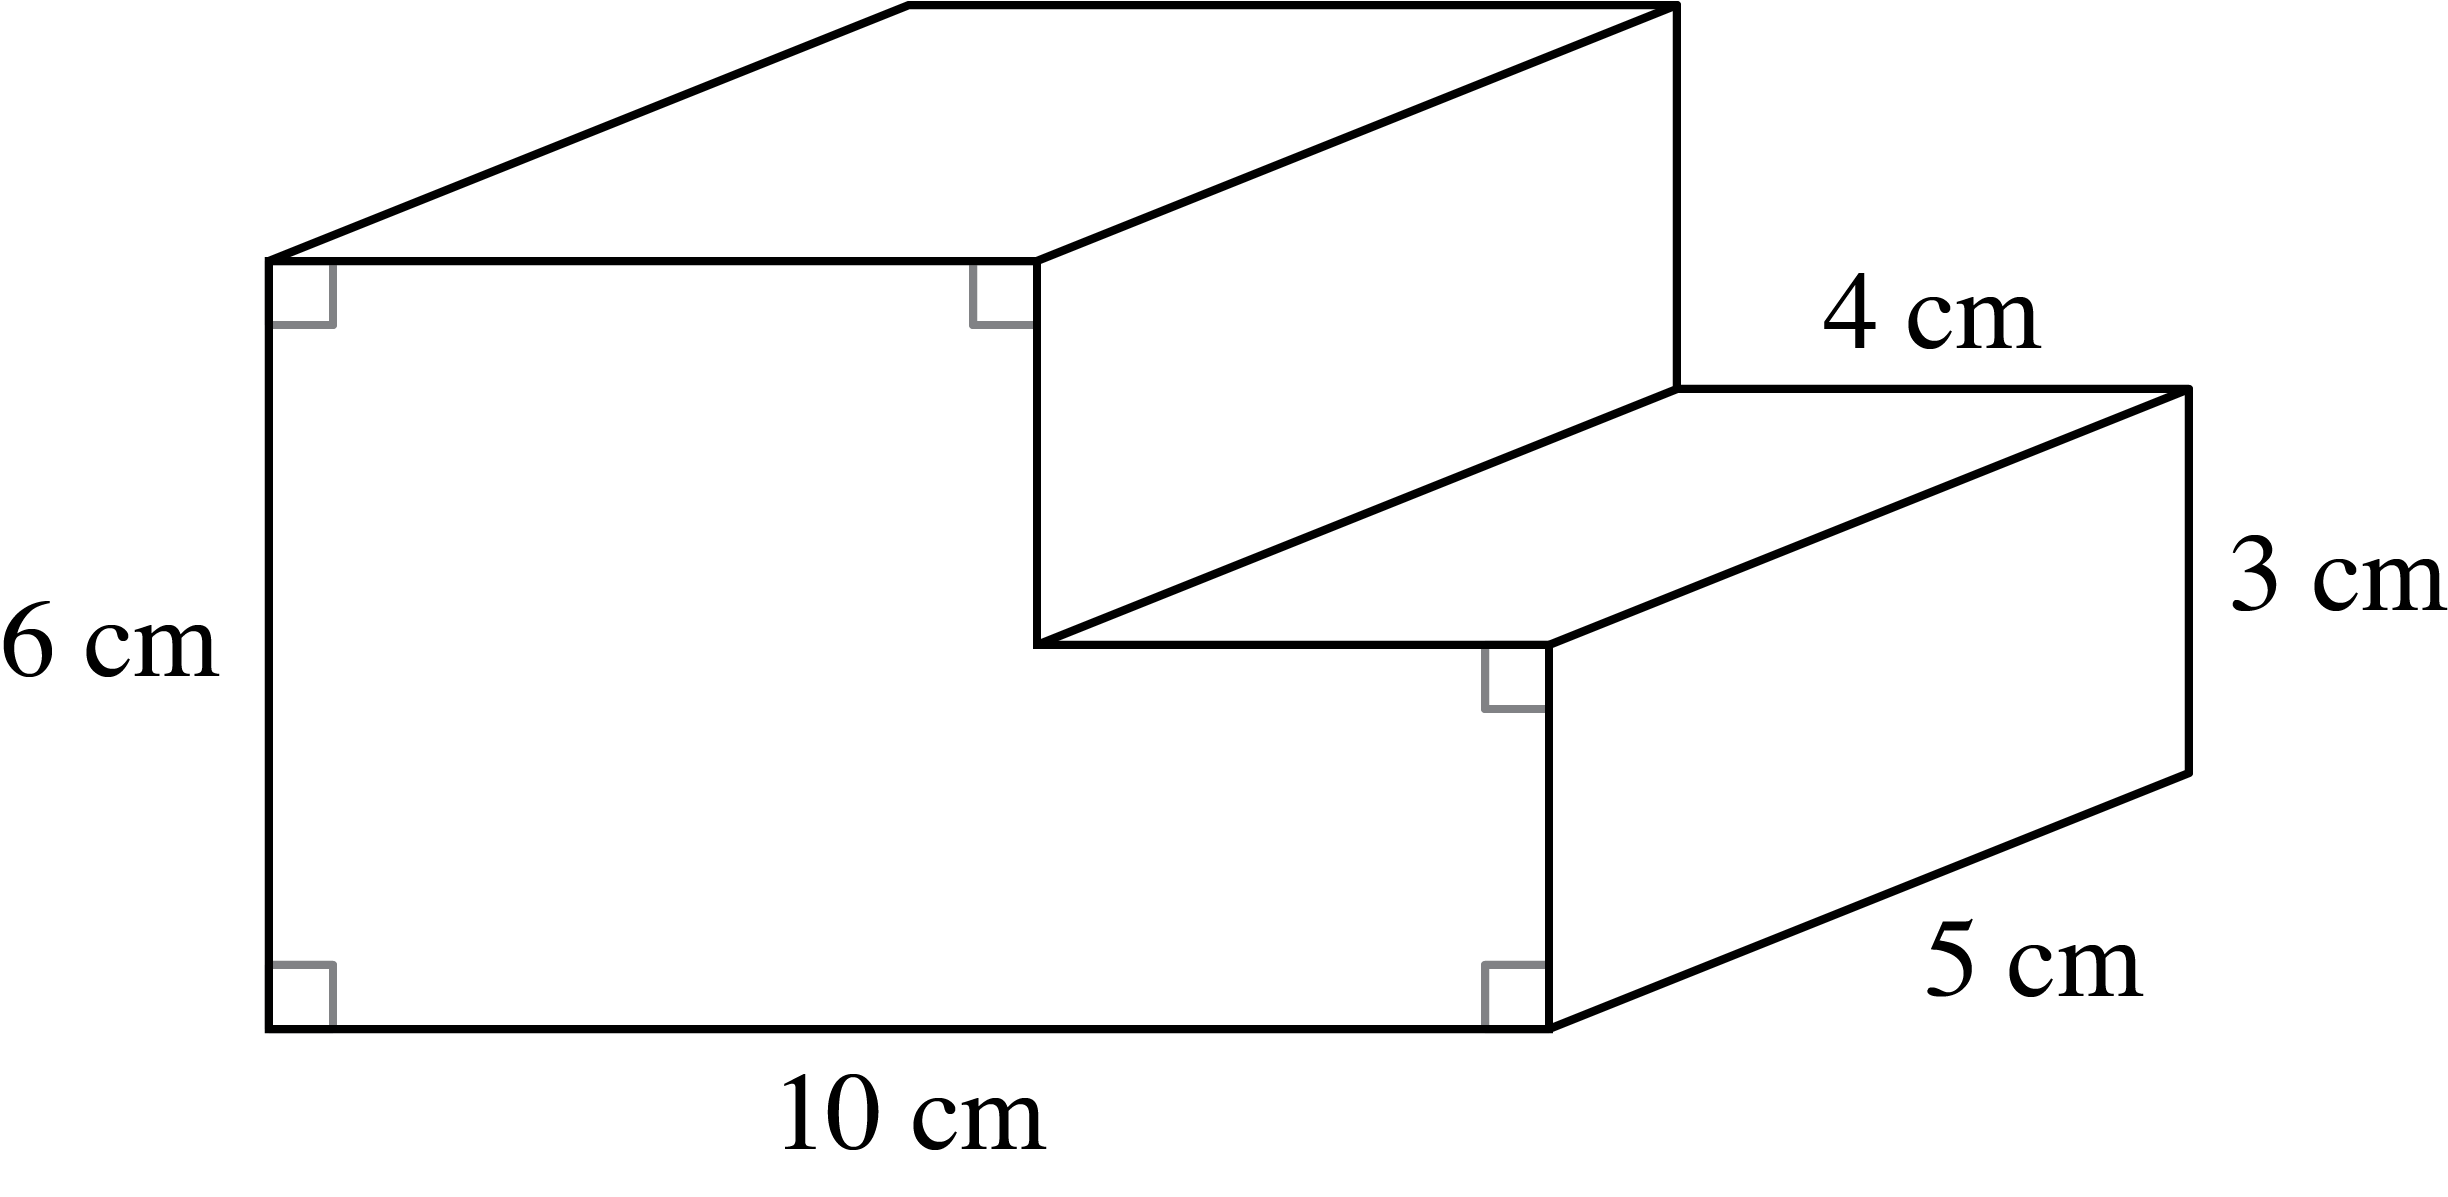 A prism in centimeters where the base is as follows: Draw down, 6, then right, 10, up 3, left 4, up 3, left 6 to enclose the base.  The height of the prism is, 5 centimeters.